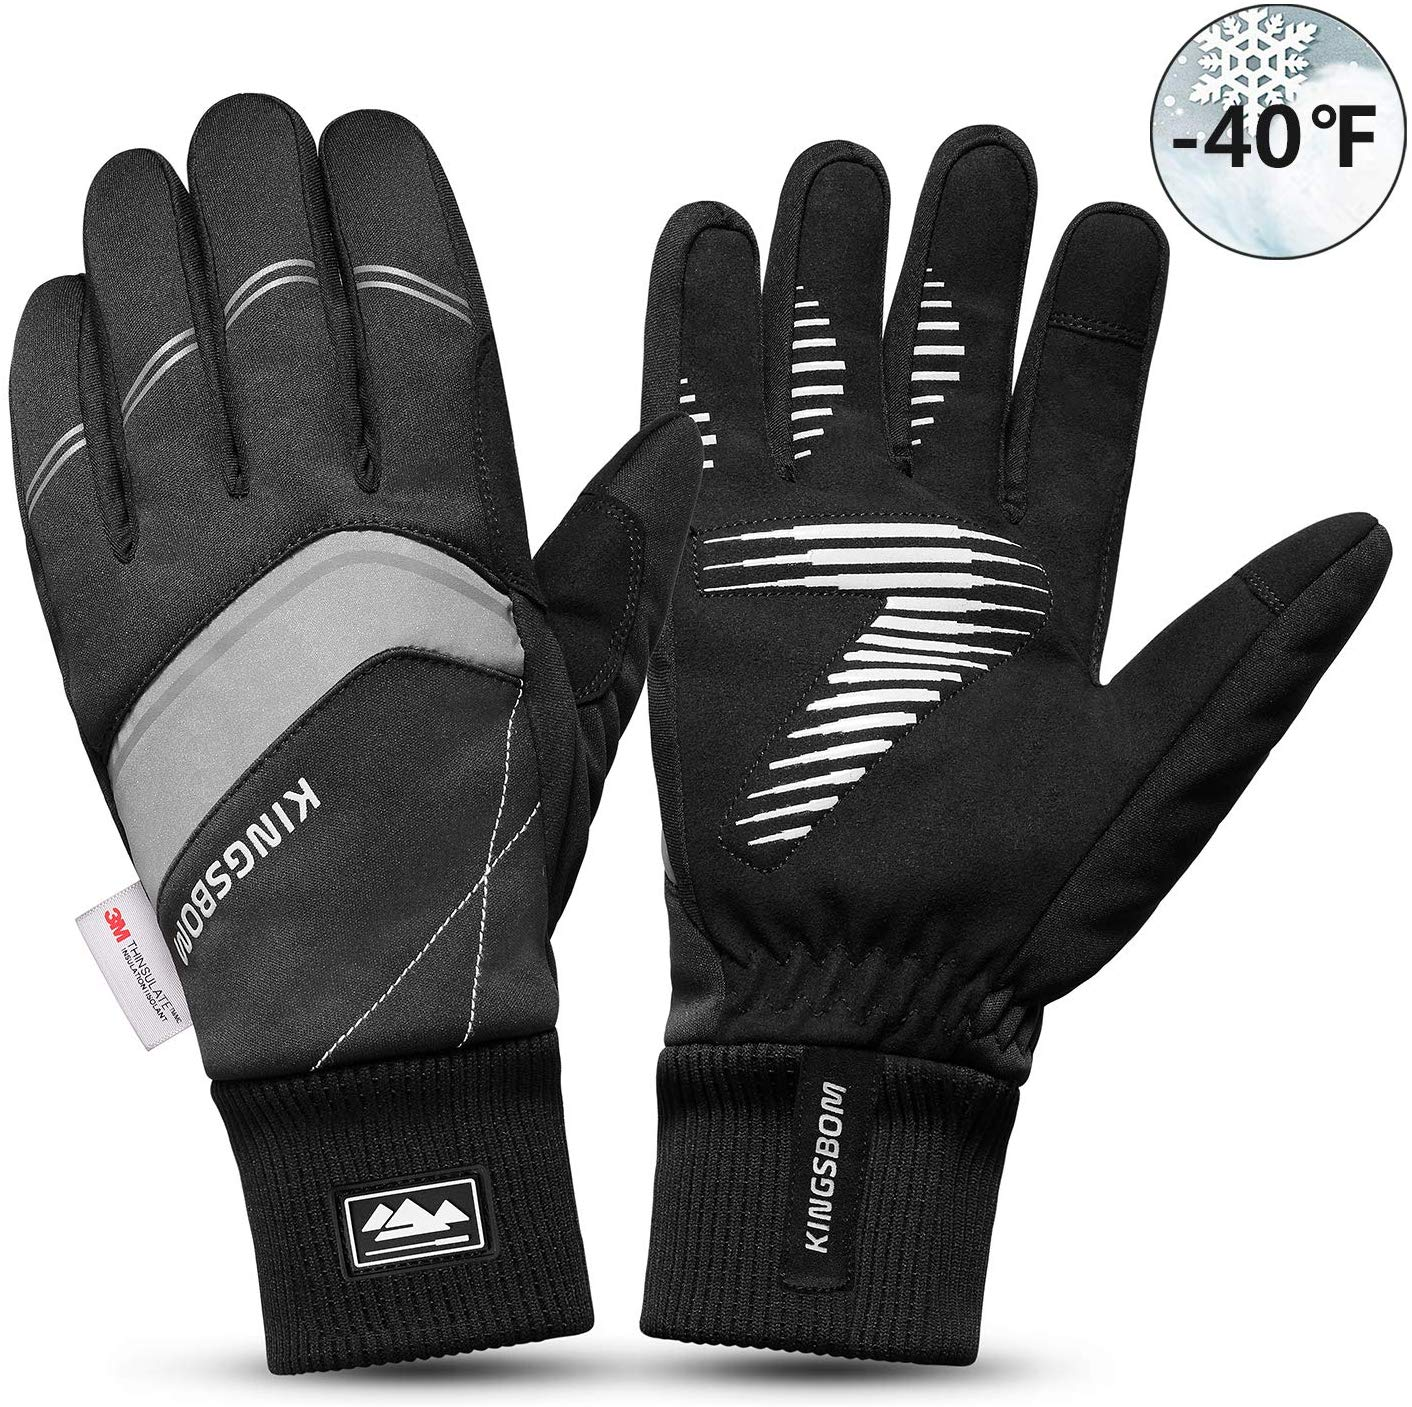 KINGSBOM Waterproof Warm Gloves - 3M Thinsulate Winter Touch Screen Thermal Gloves